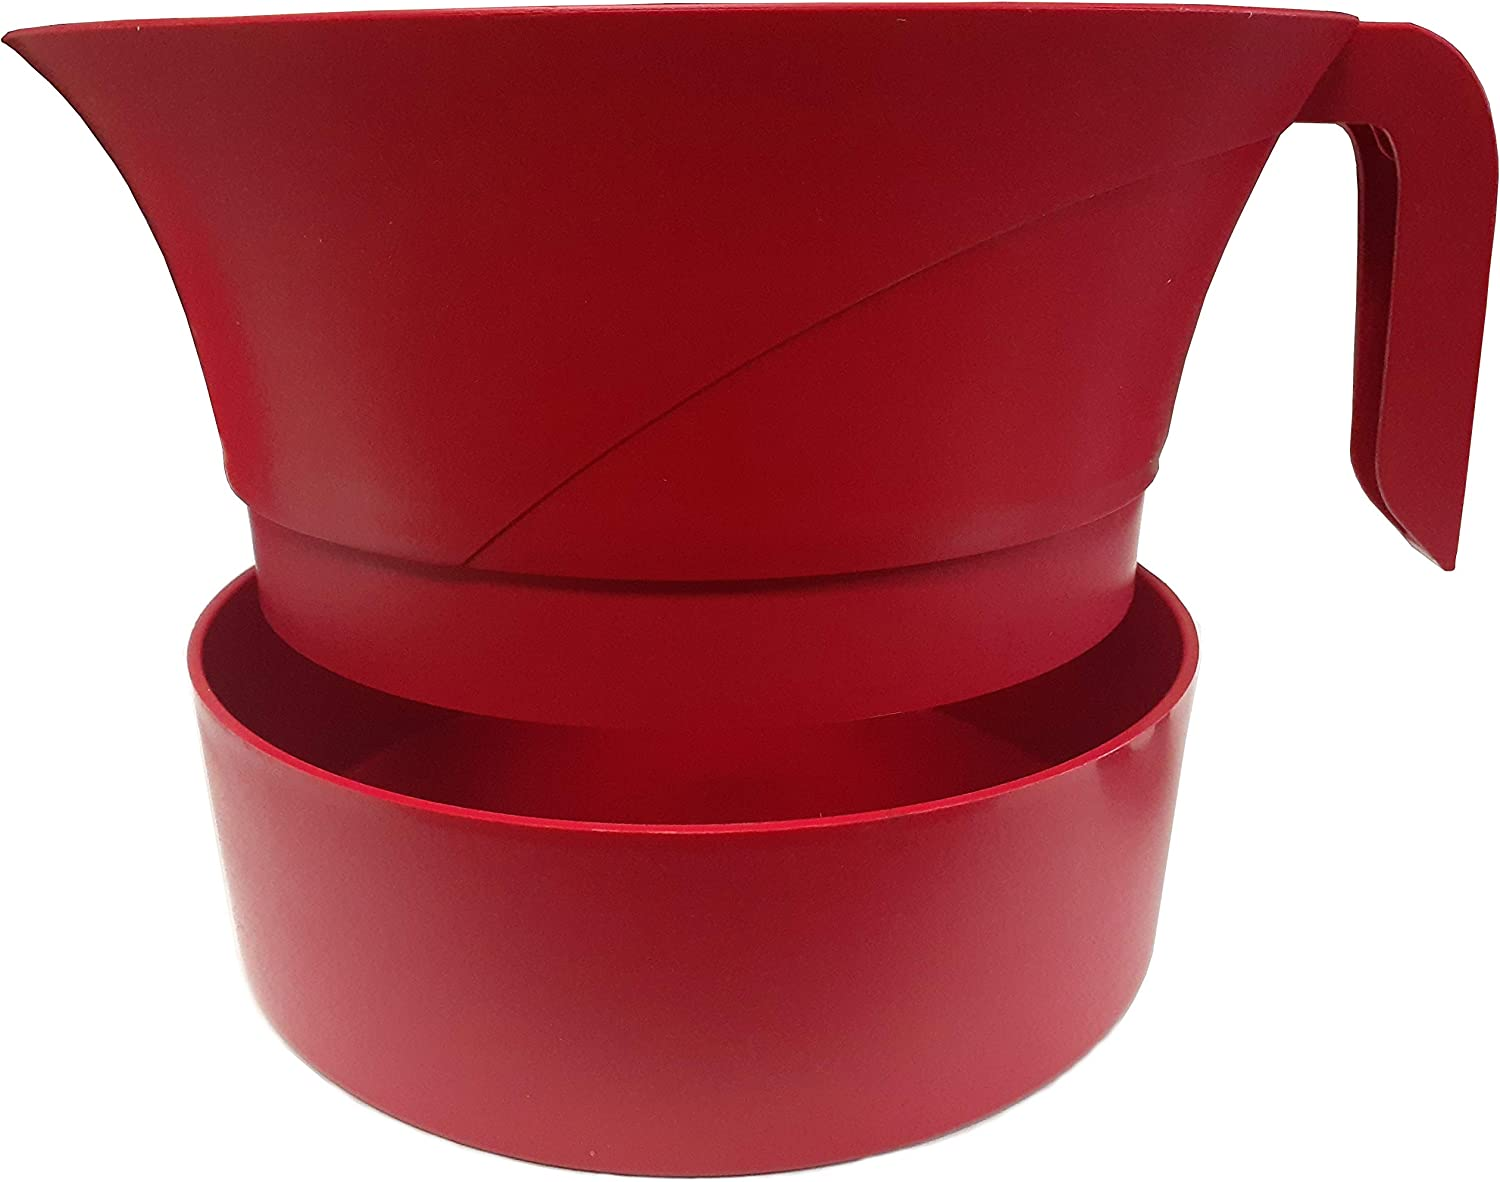 PaperlessKitchen Meat Strainer Heat Resistant Plastic Ground Beef Grease Easy Colander - Serves Up to 3lbs of Meat, Pasta, Vegetables & Jellies - 3 Pcs Set (Red)